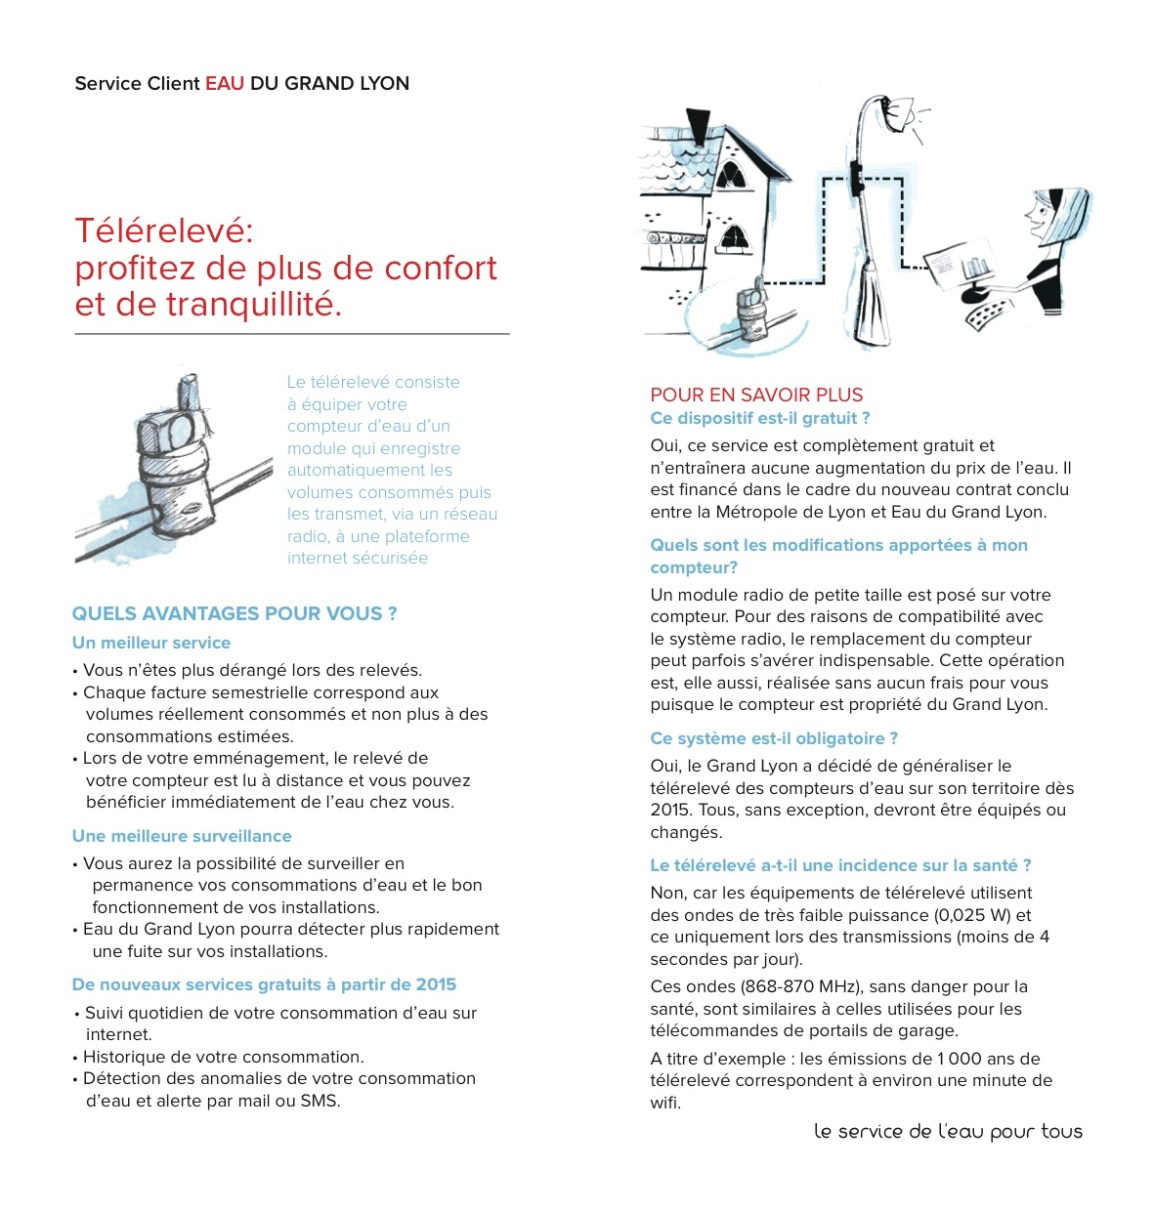 Guide_pratique_telereleve_EDGL